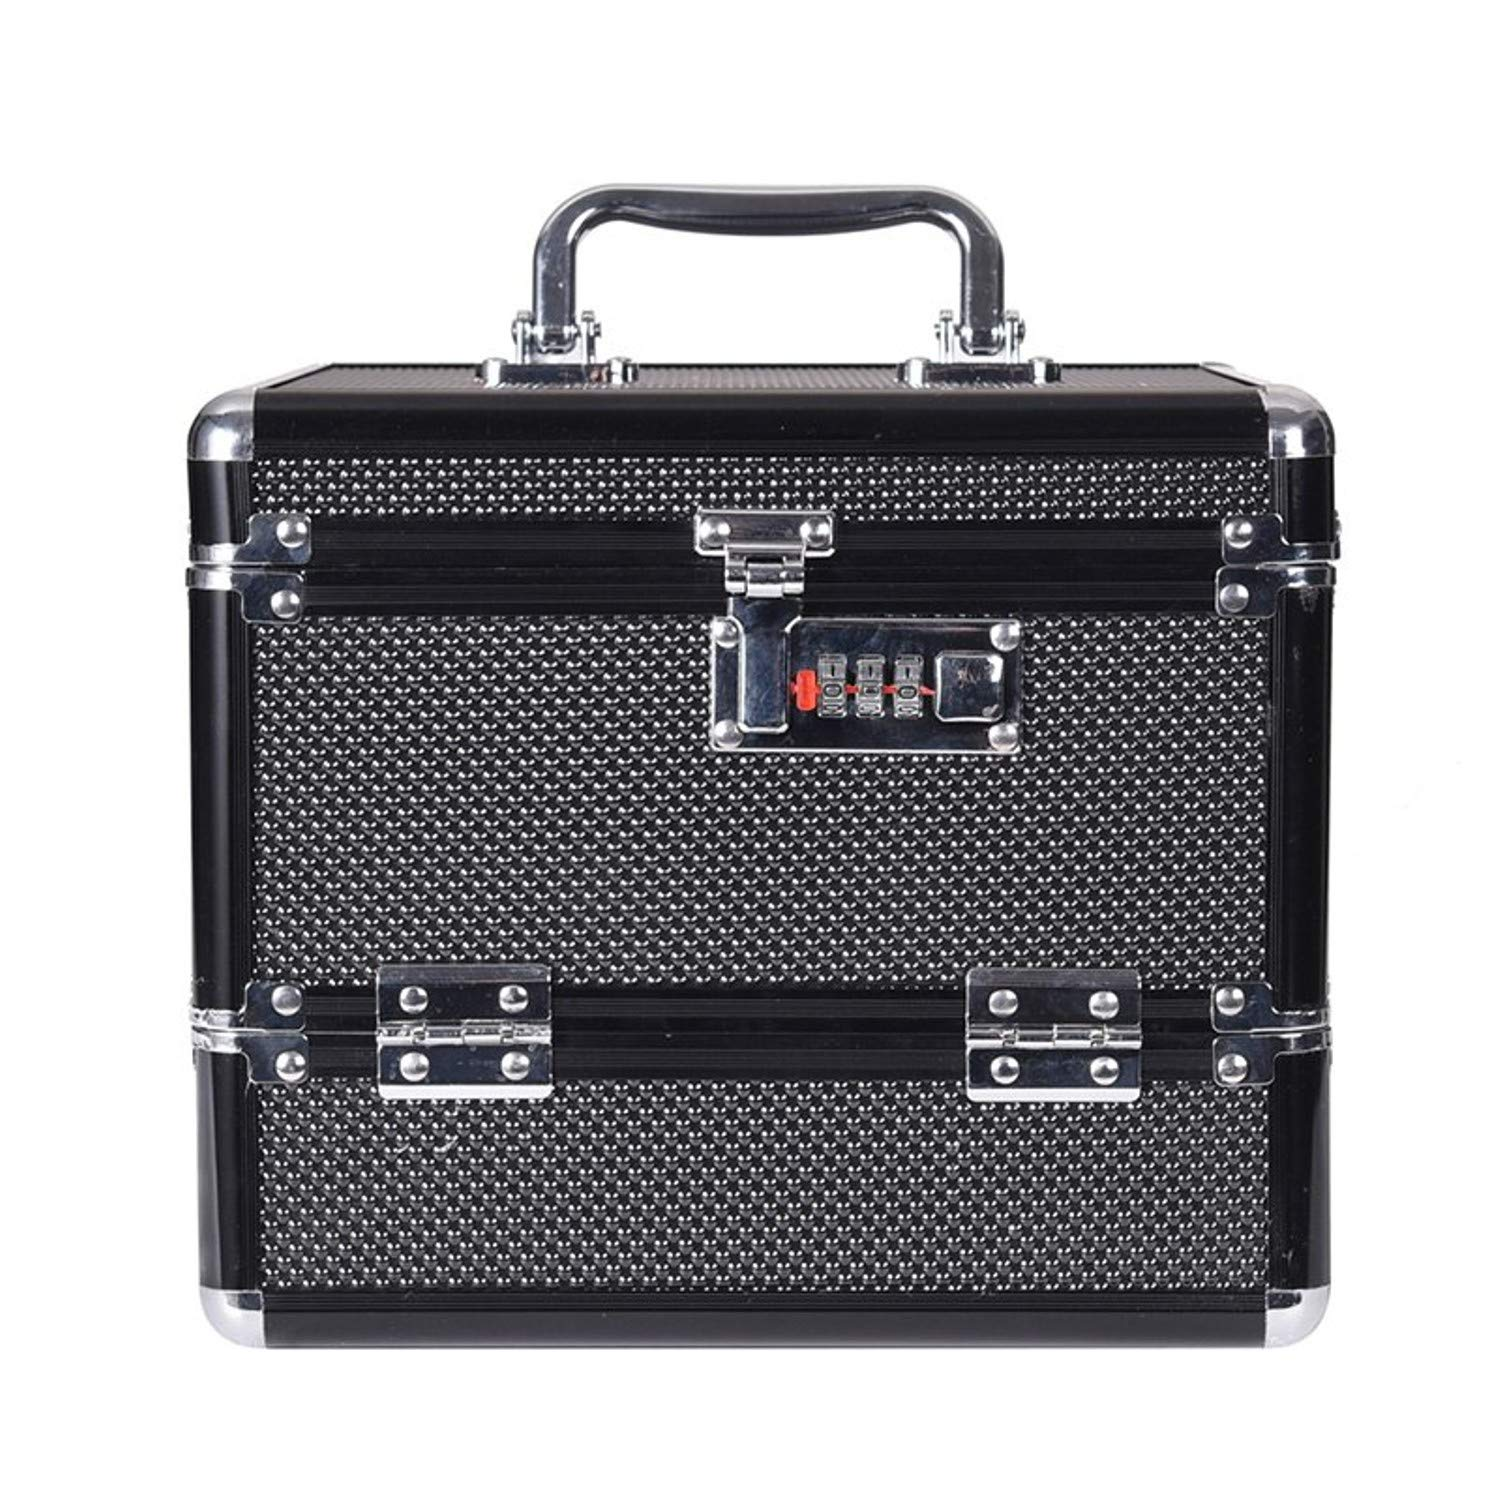 Olwen Shop hot selling quality Professional Aluminium alloy Cosmetic case Make up Box Makeup Case Multi Tiers Lockable Jewelry Box (black)